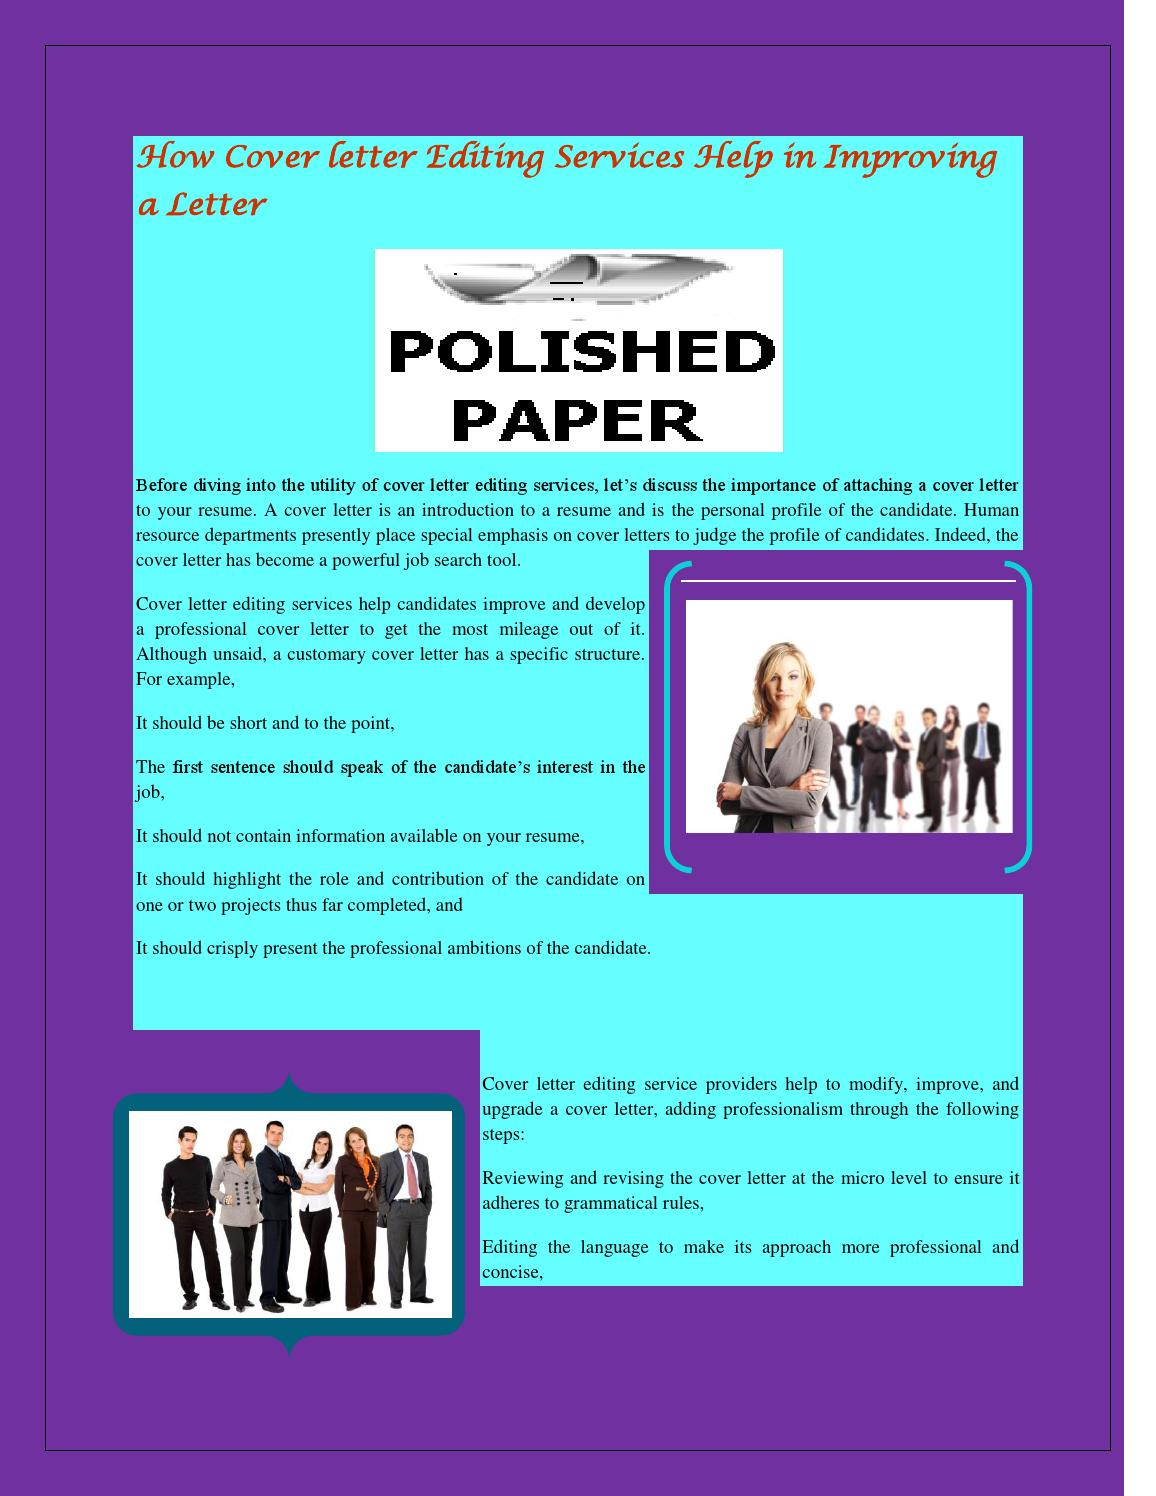 How cover letter editing services help in improving a letter by how cover letter editing services help in improving a letter by polished paper issuu madrichimfo Gallery